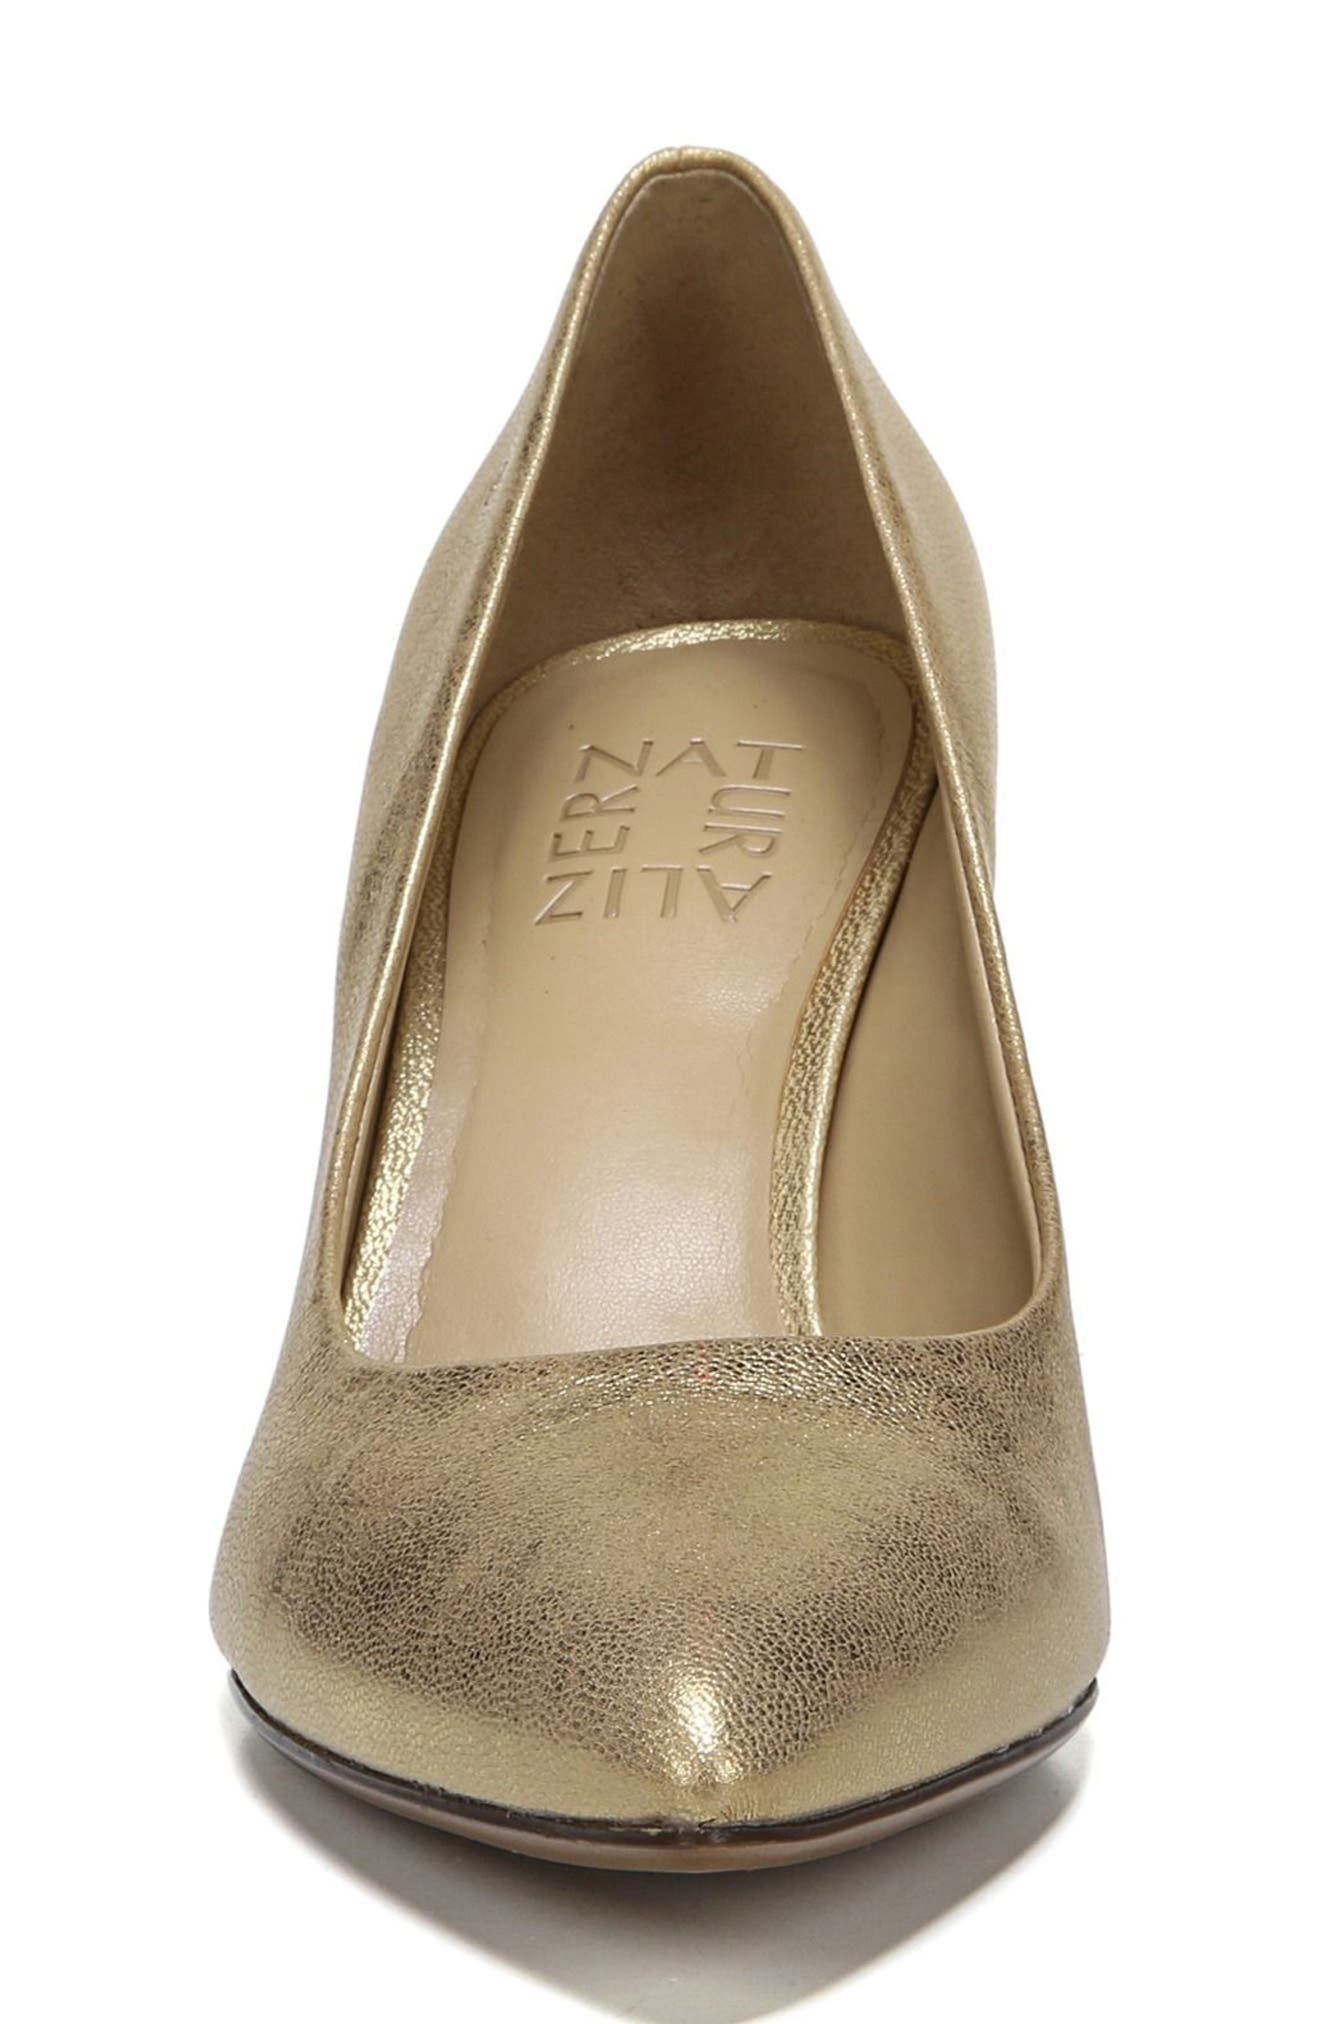 NATURALIZER, Natalie Pointy Toe Pump, Alternate thumbnail 4, color, GOLD LEATHER